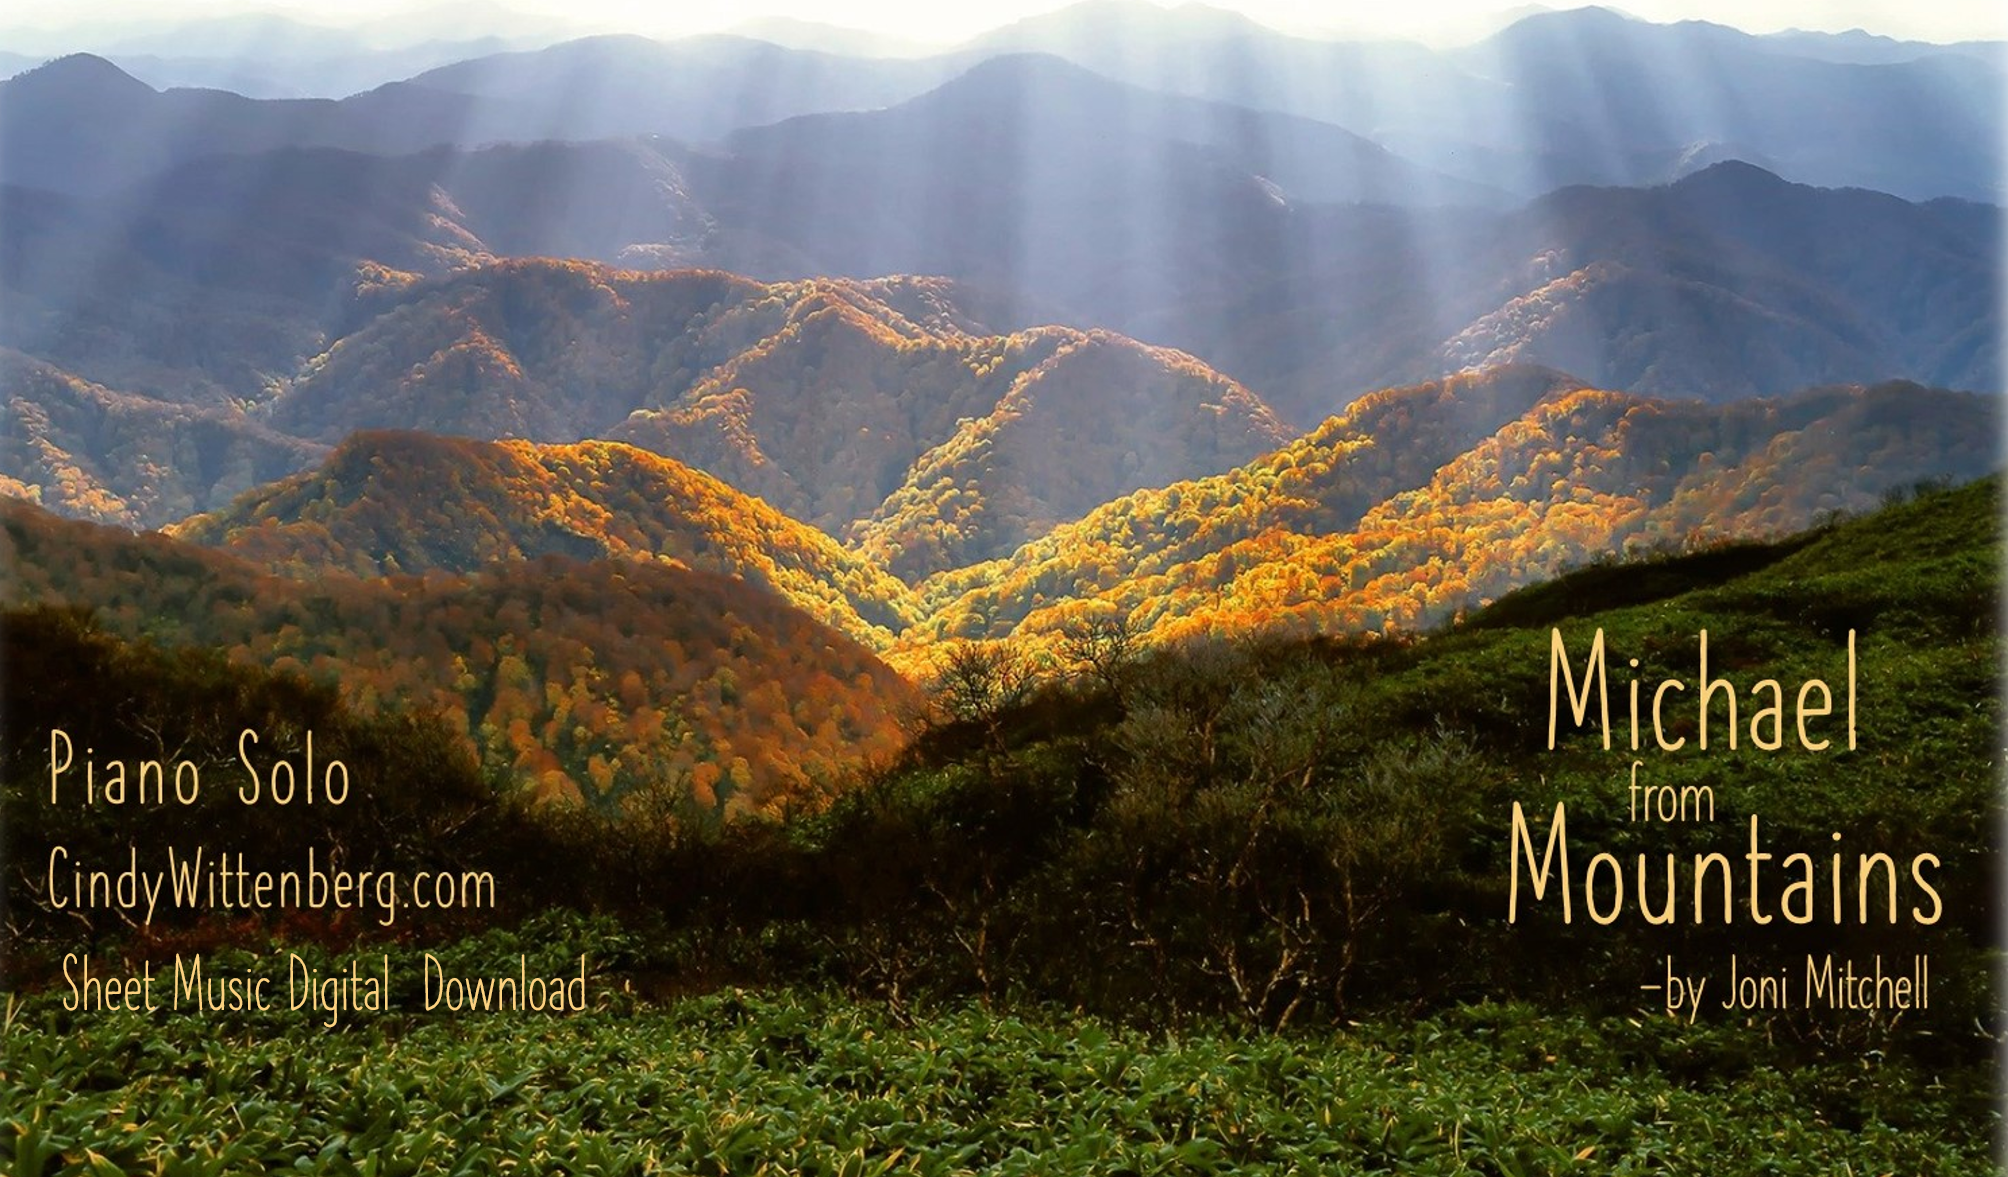 Michael from Mountains cover photo for m